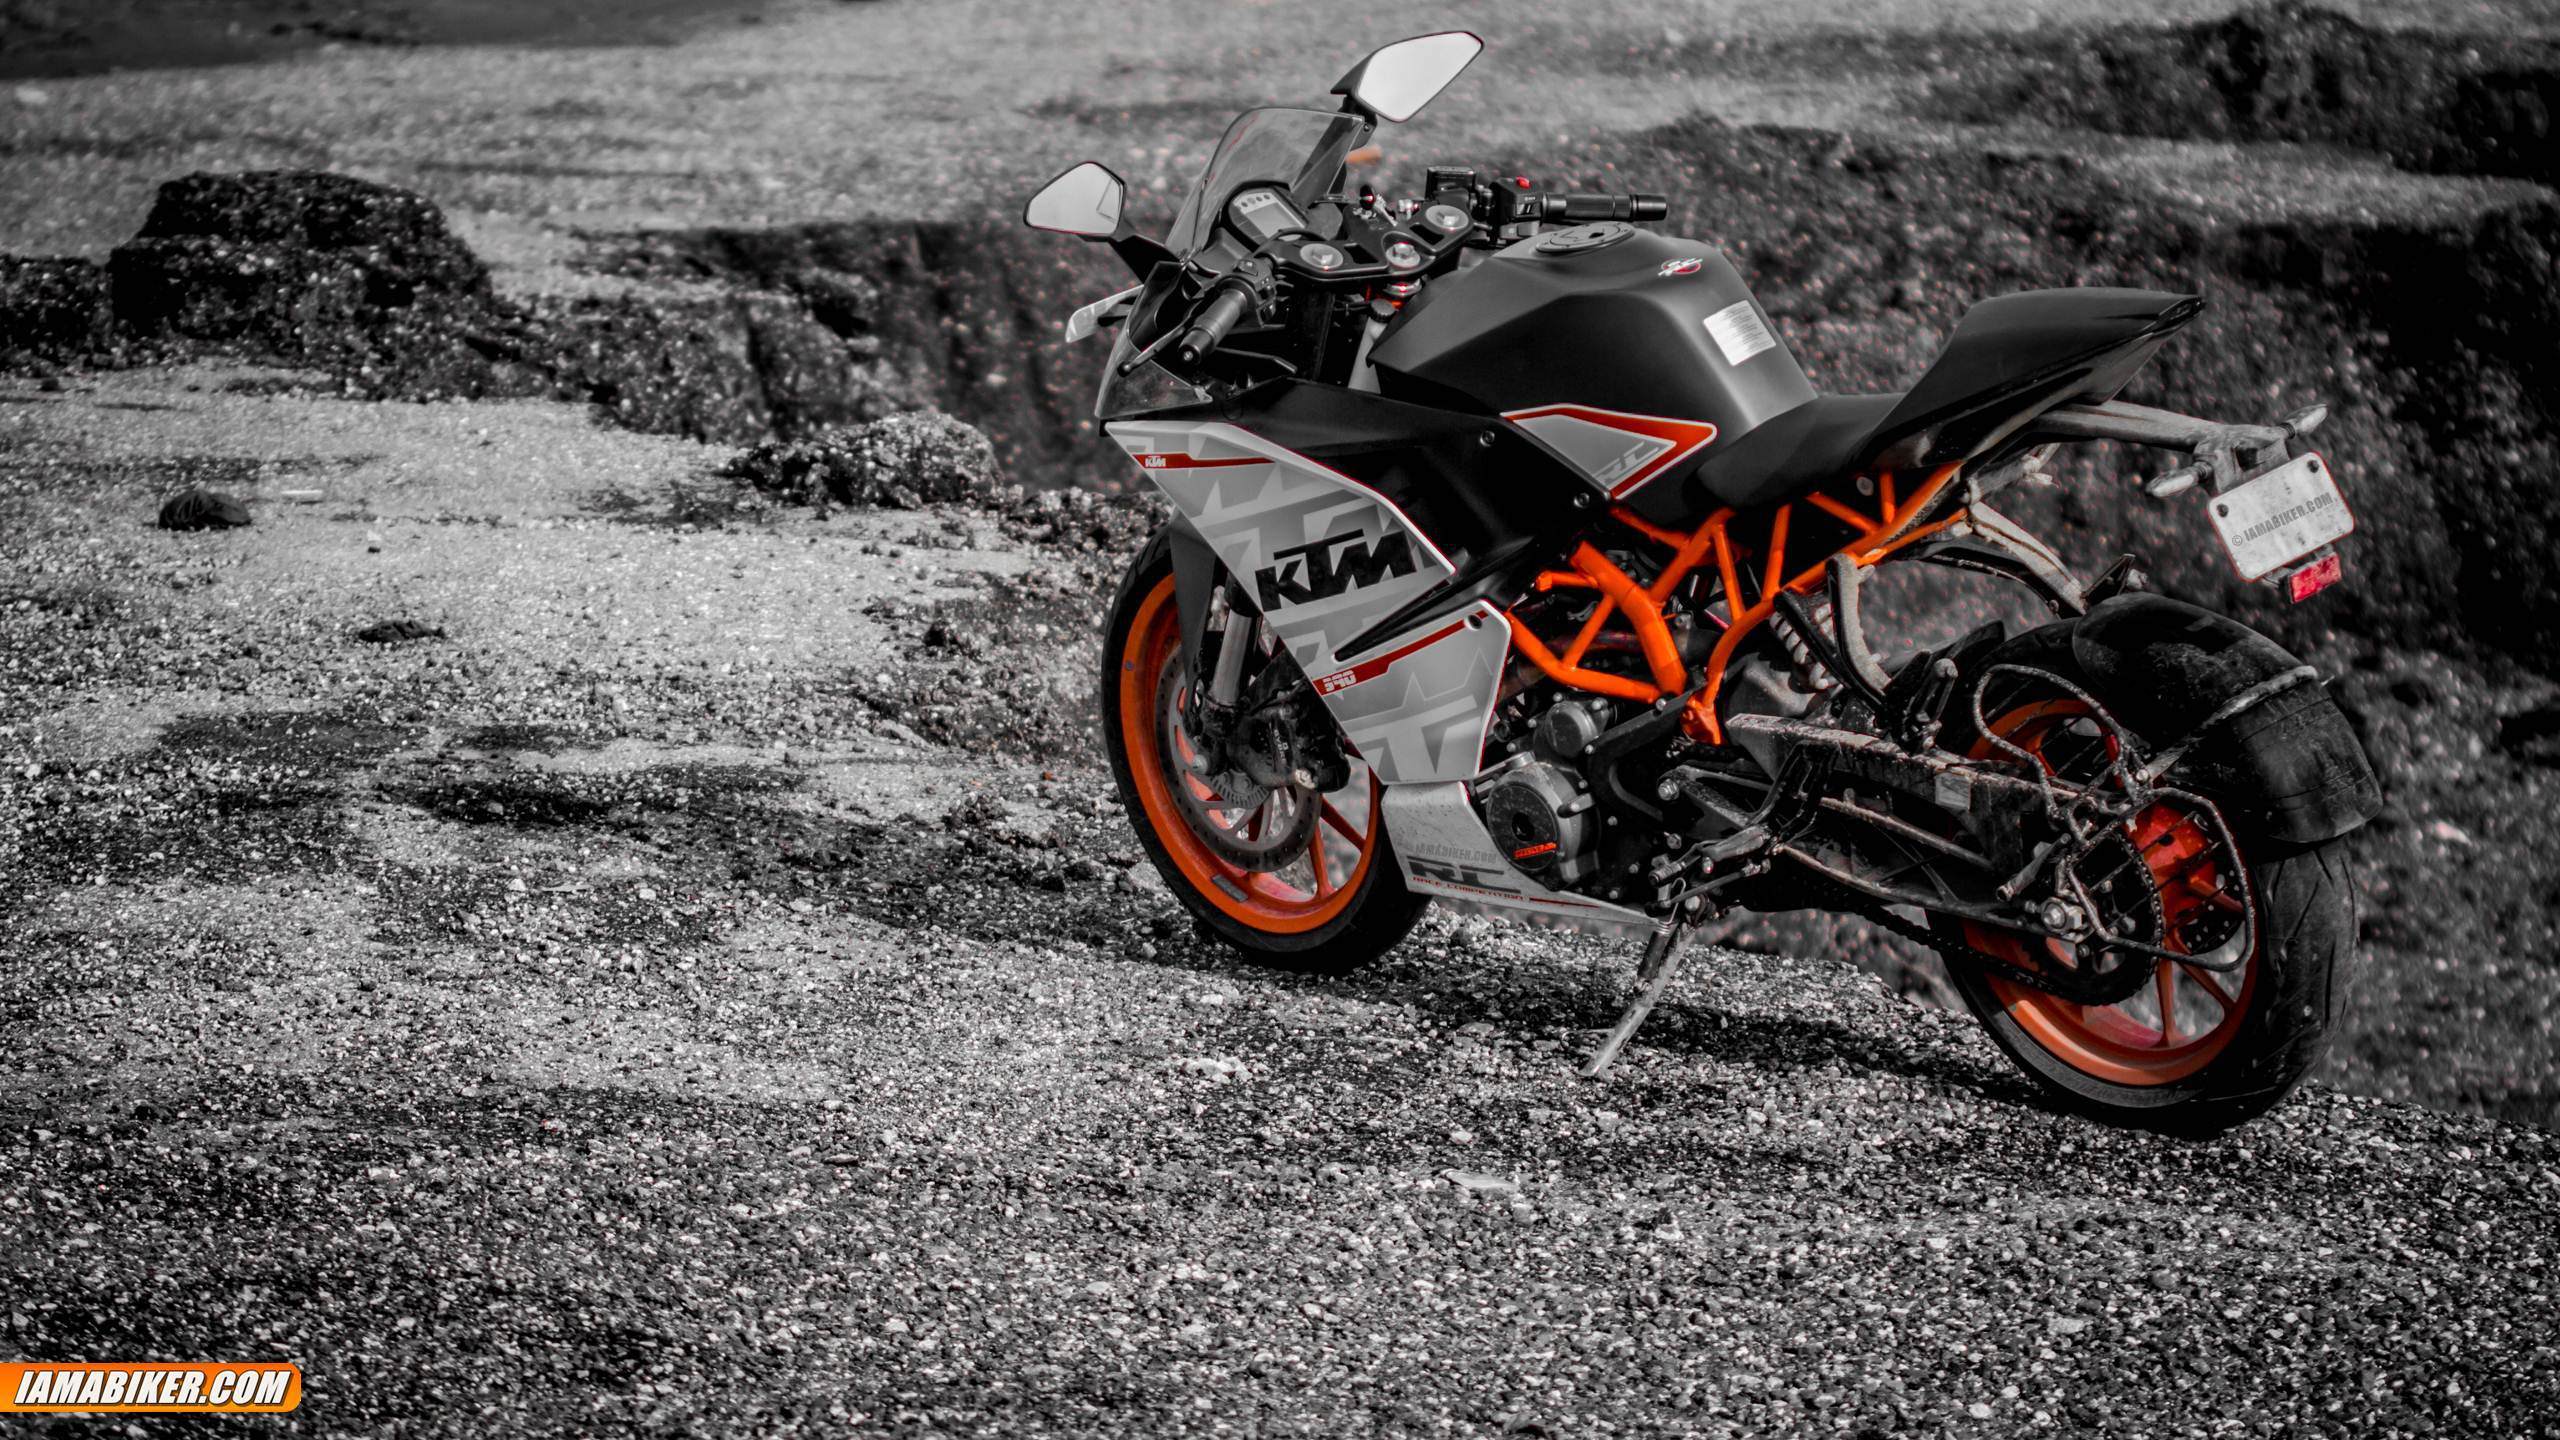 KTM RC 390 wallpapers   5 2560x1440